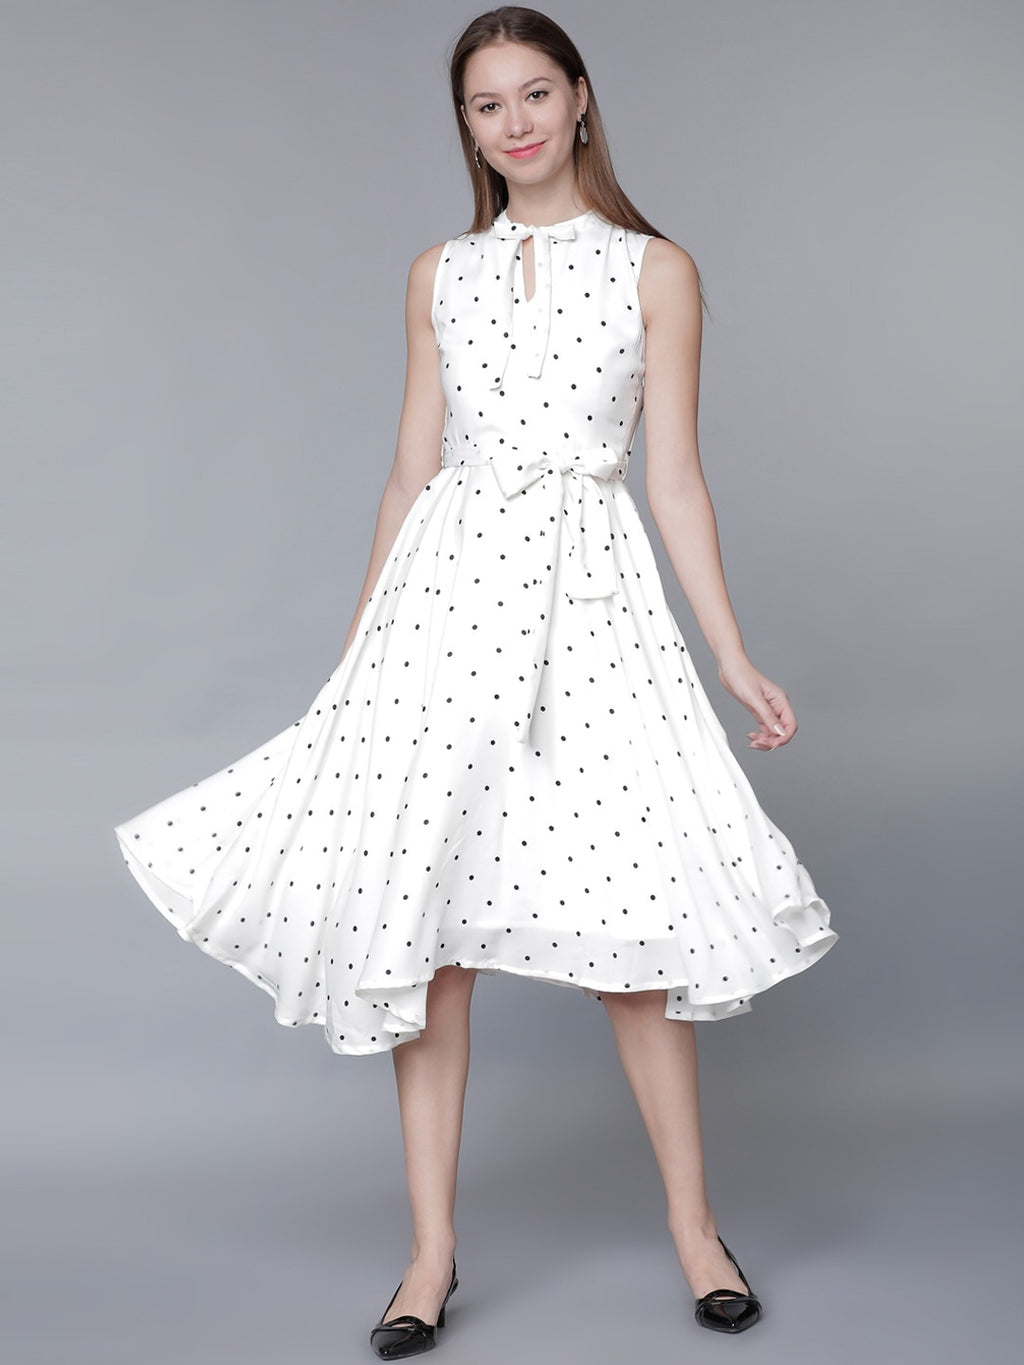 POLKA DOT PRINT FIT AND FLARE DRESS